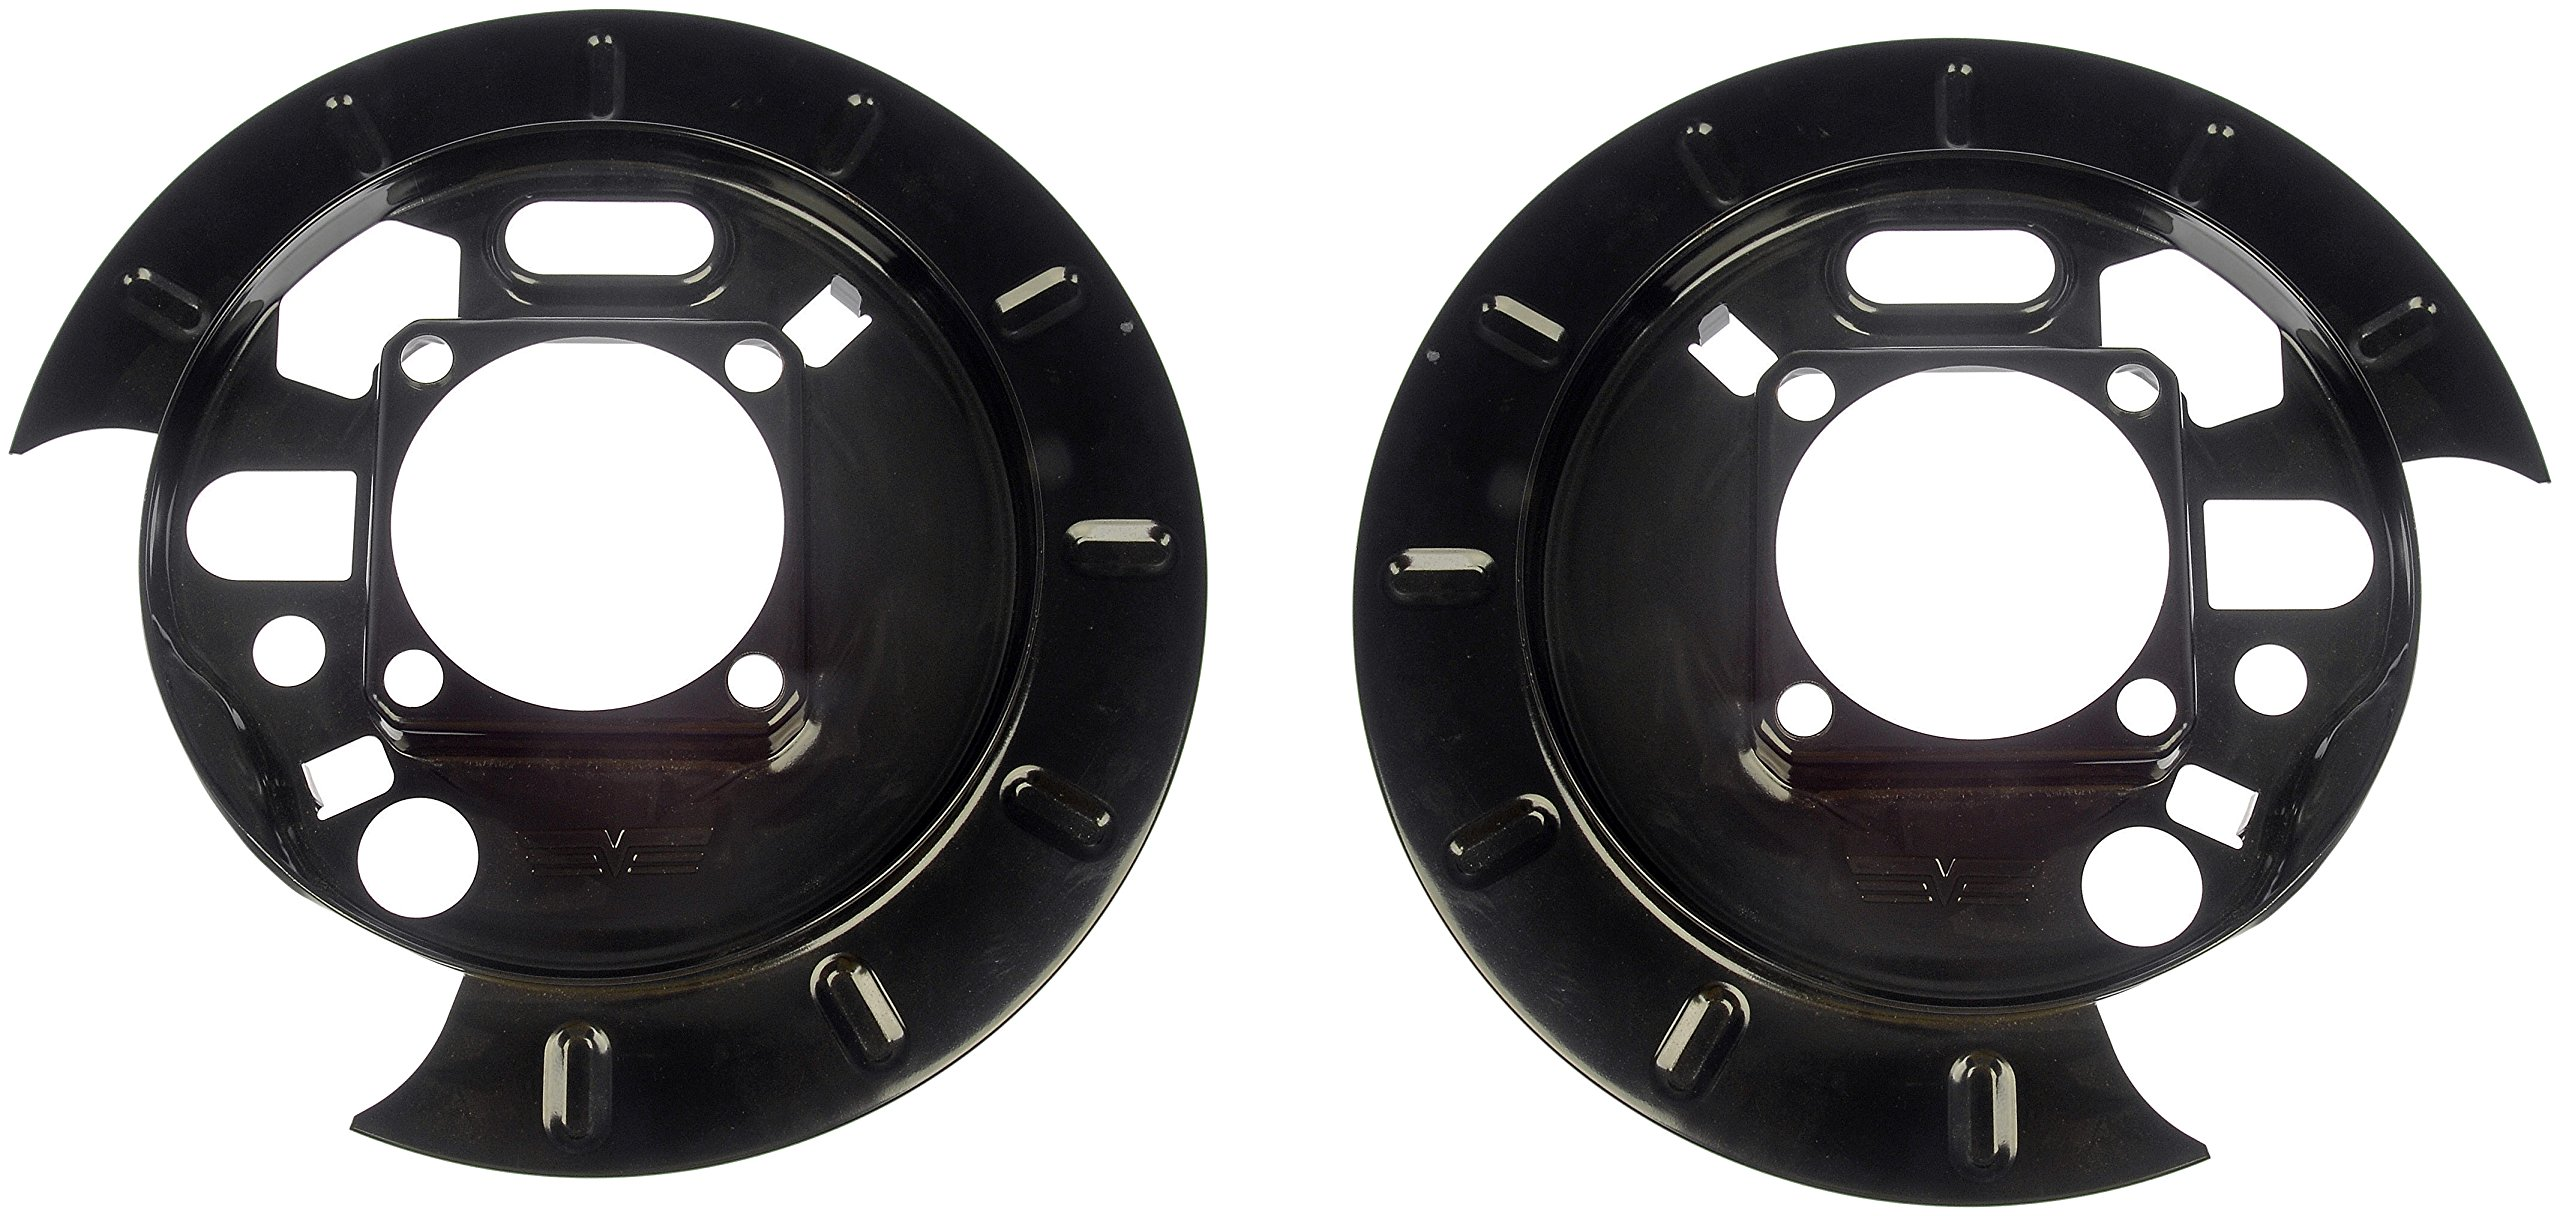 Dorman 924-208 Brake Dust Shield, Pair by Dorman